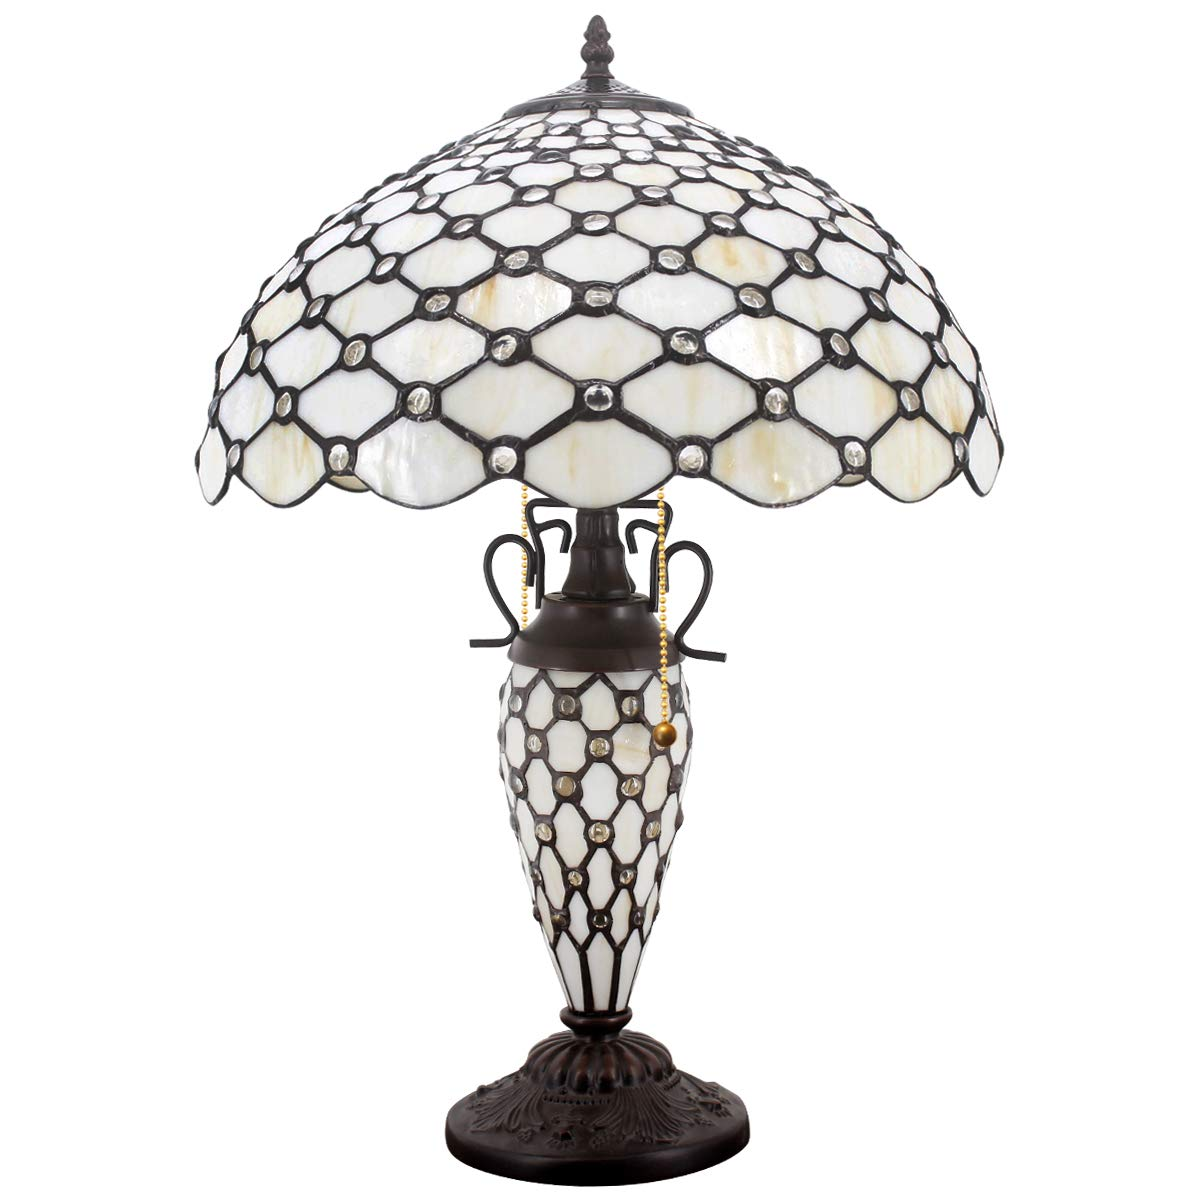 Tiffany Table Lamp with Crystal Pear Bead Stained Glass Colorful Lampshade 3 Light Pull Chain Antique Night Light Base 24 Inch Tall for Living Room Bedroom Coffee Table Set S005 WERFACTORY